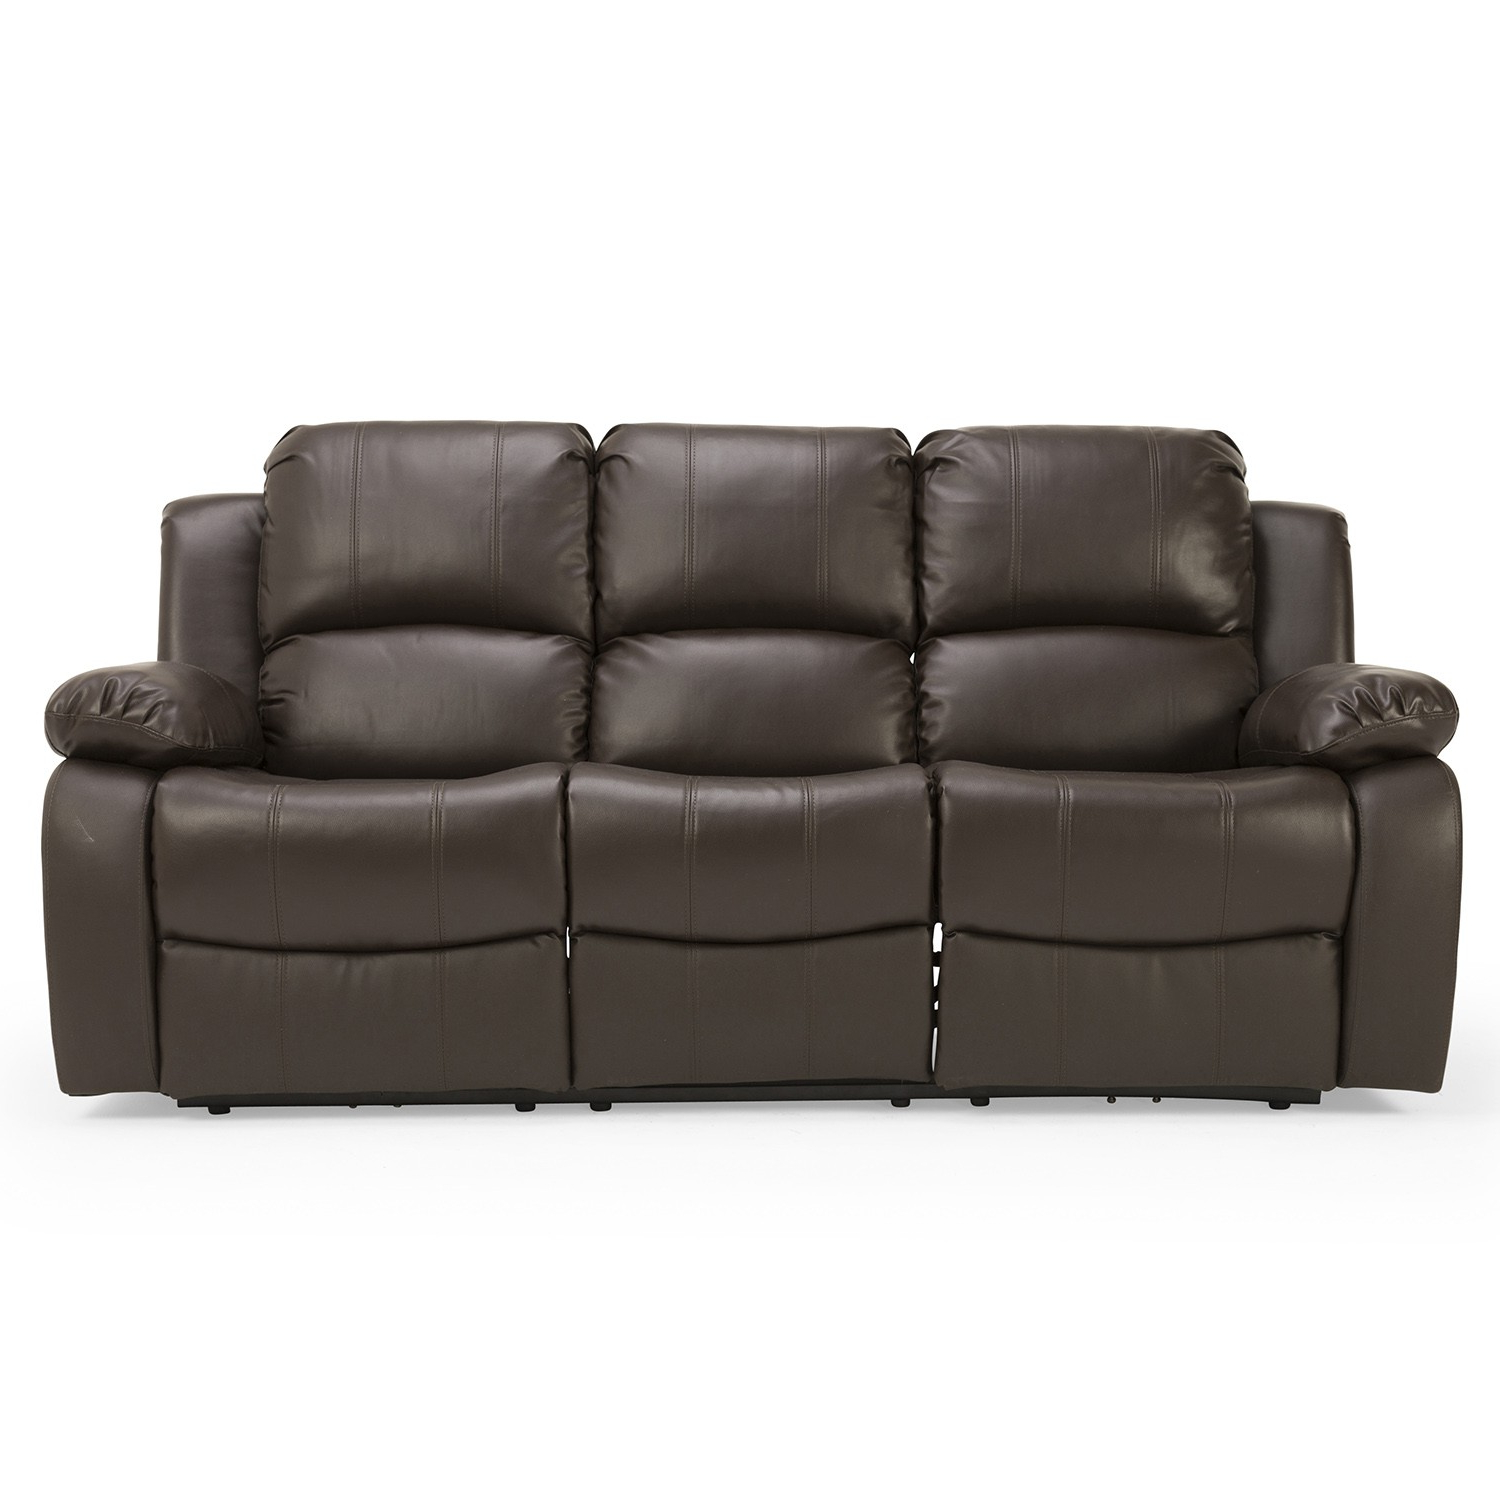 Sofas asturias 8ydm Elegante sofas asturias Leather 3 Seater Electric Recliner sofa Next